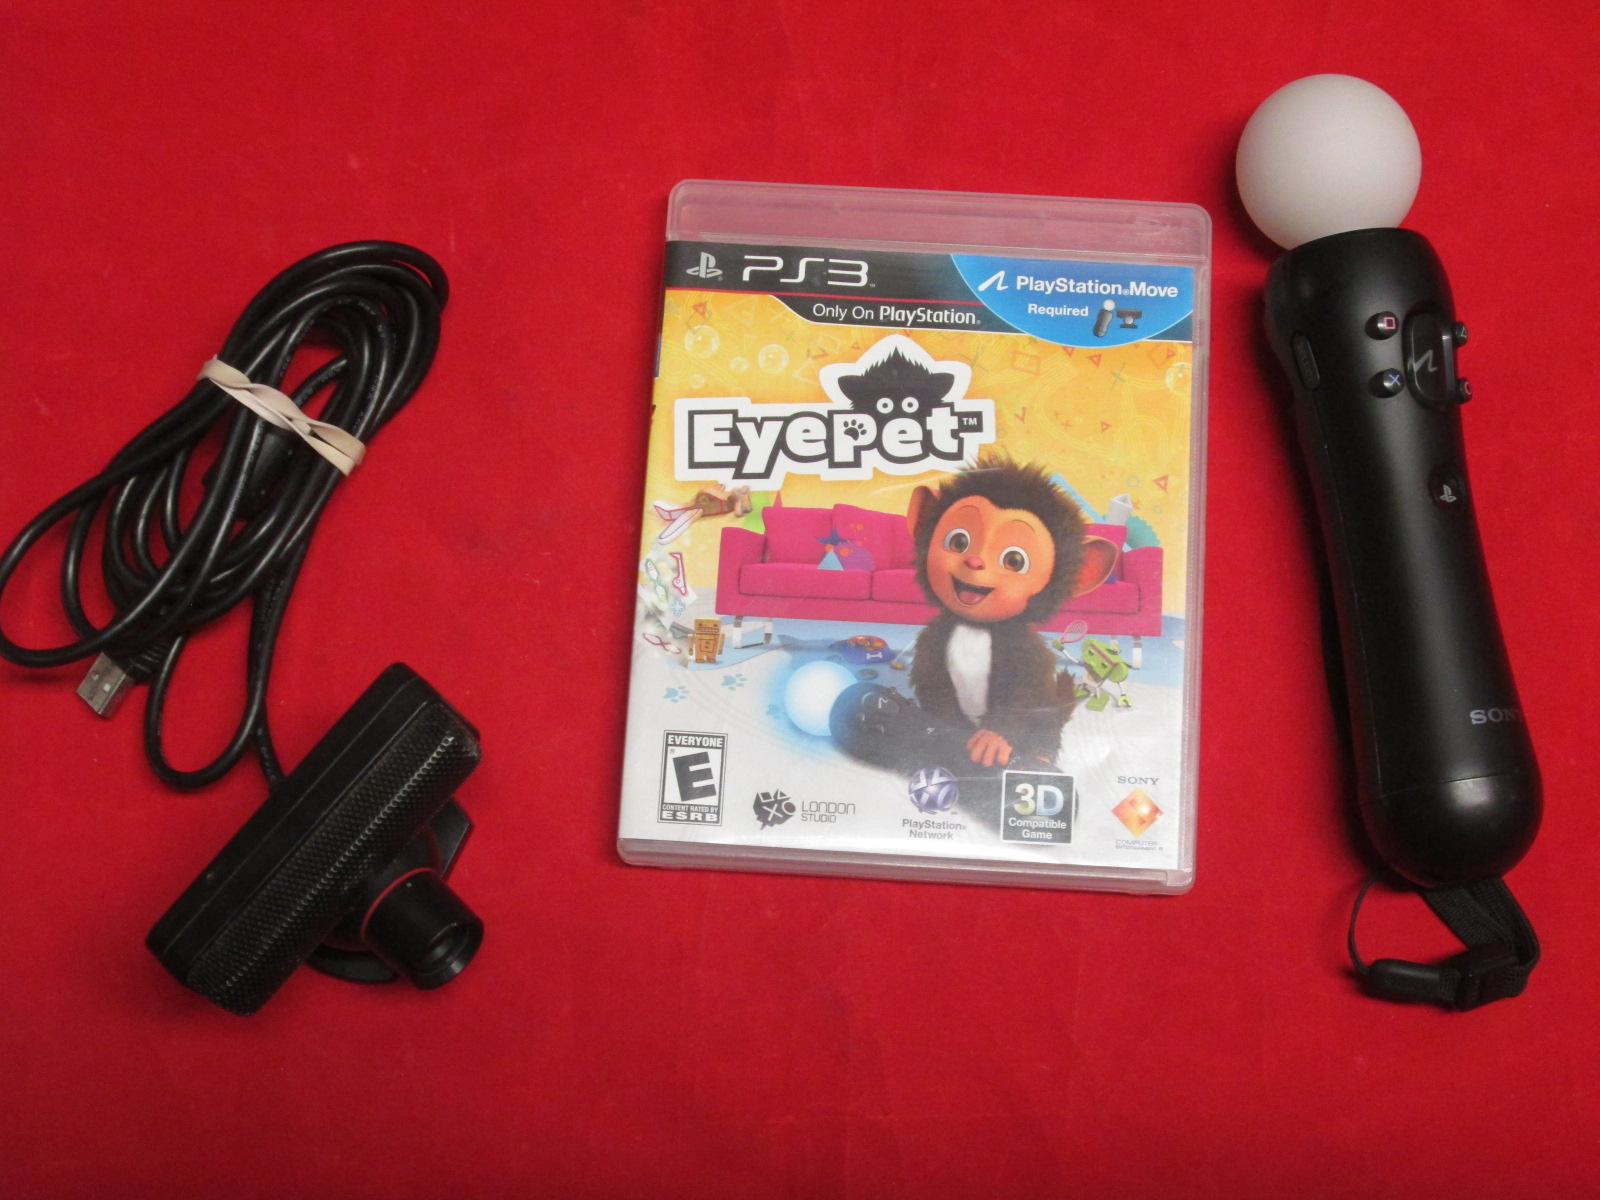 PlayStation 3 Eyepet Move Bundle With Eye Camera And Motion Controller